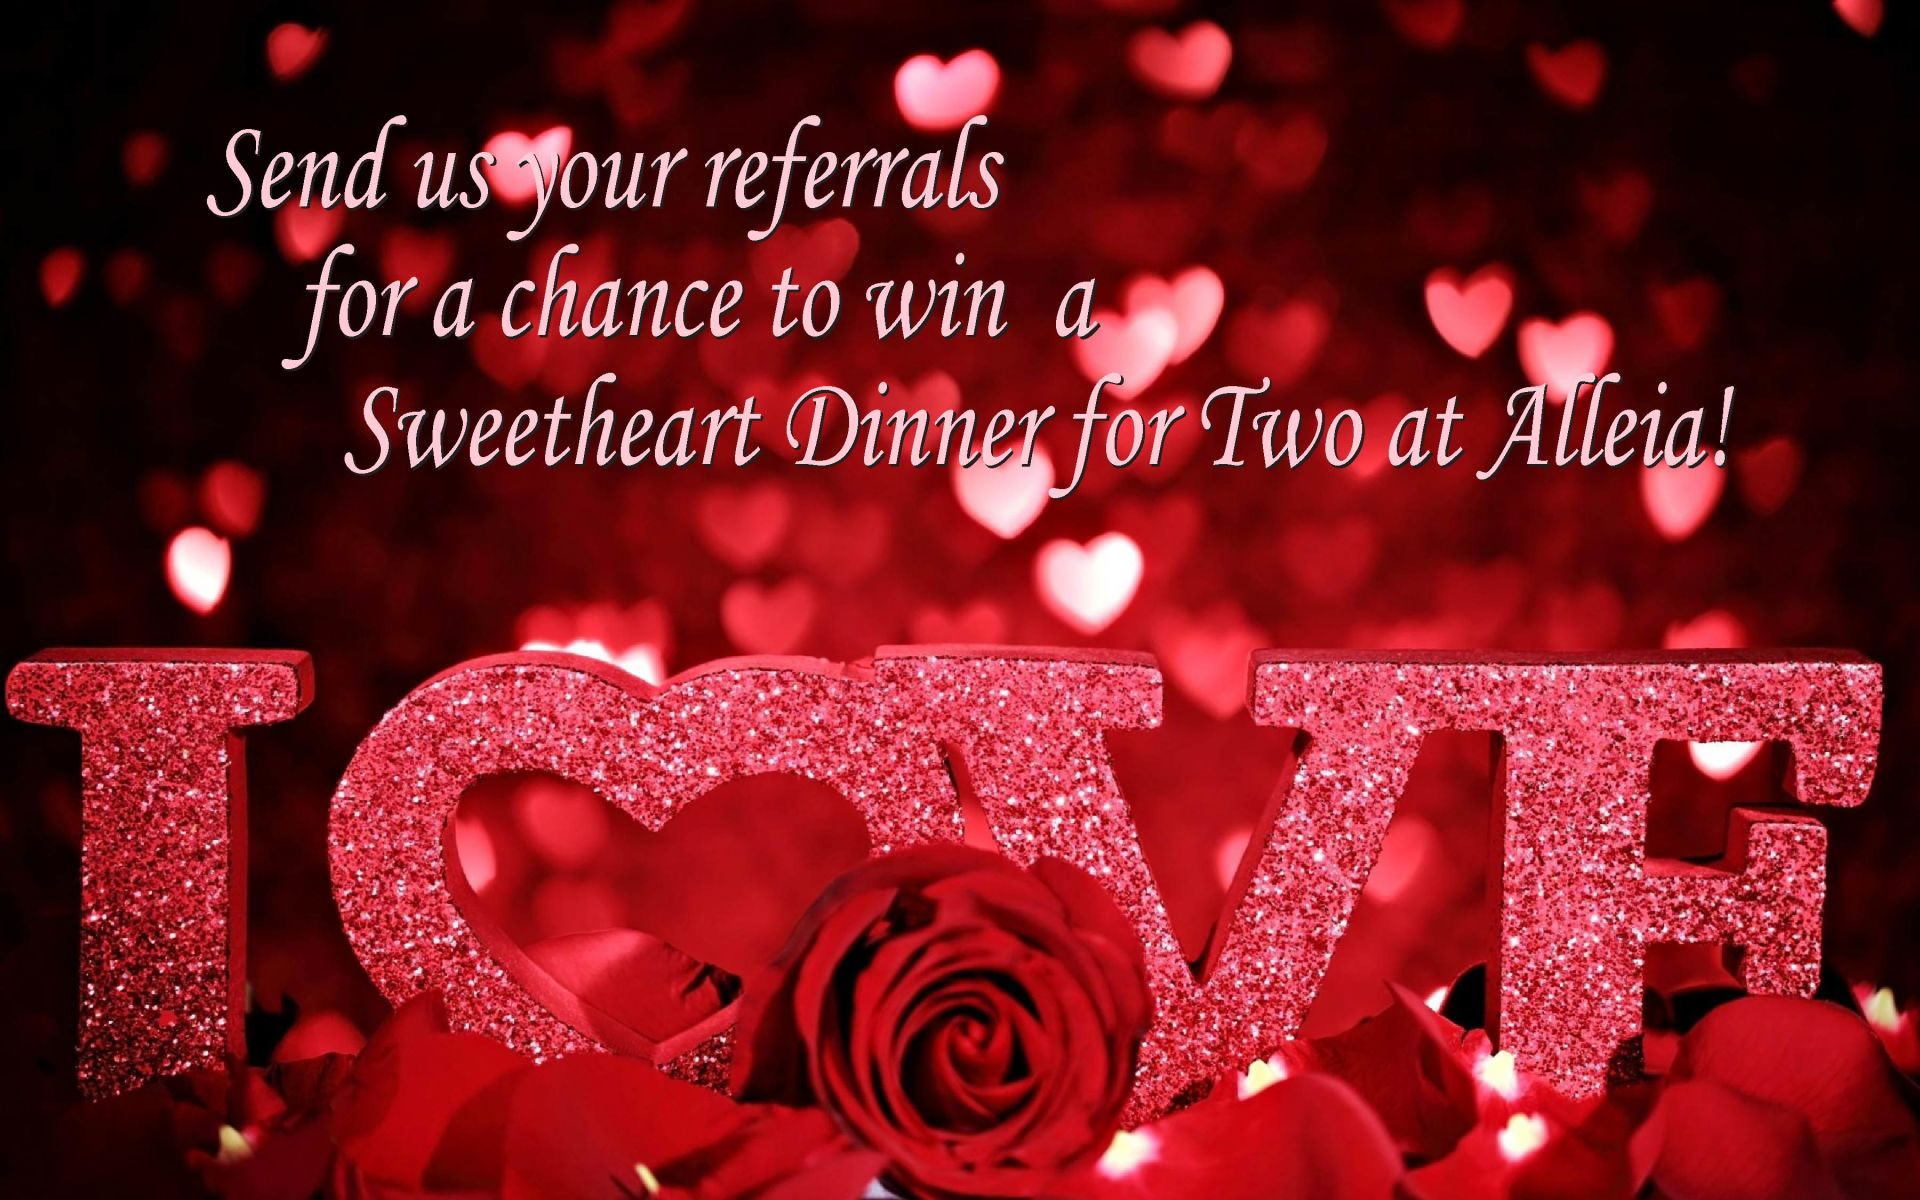 Win a Valentine Dinner for Two!